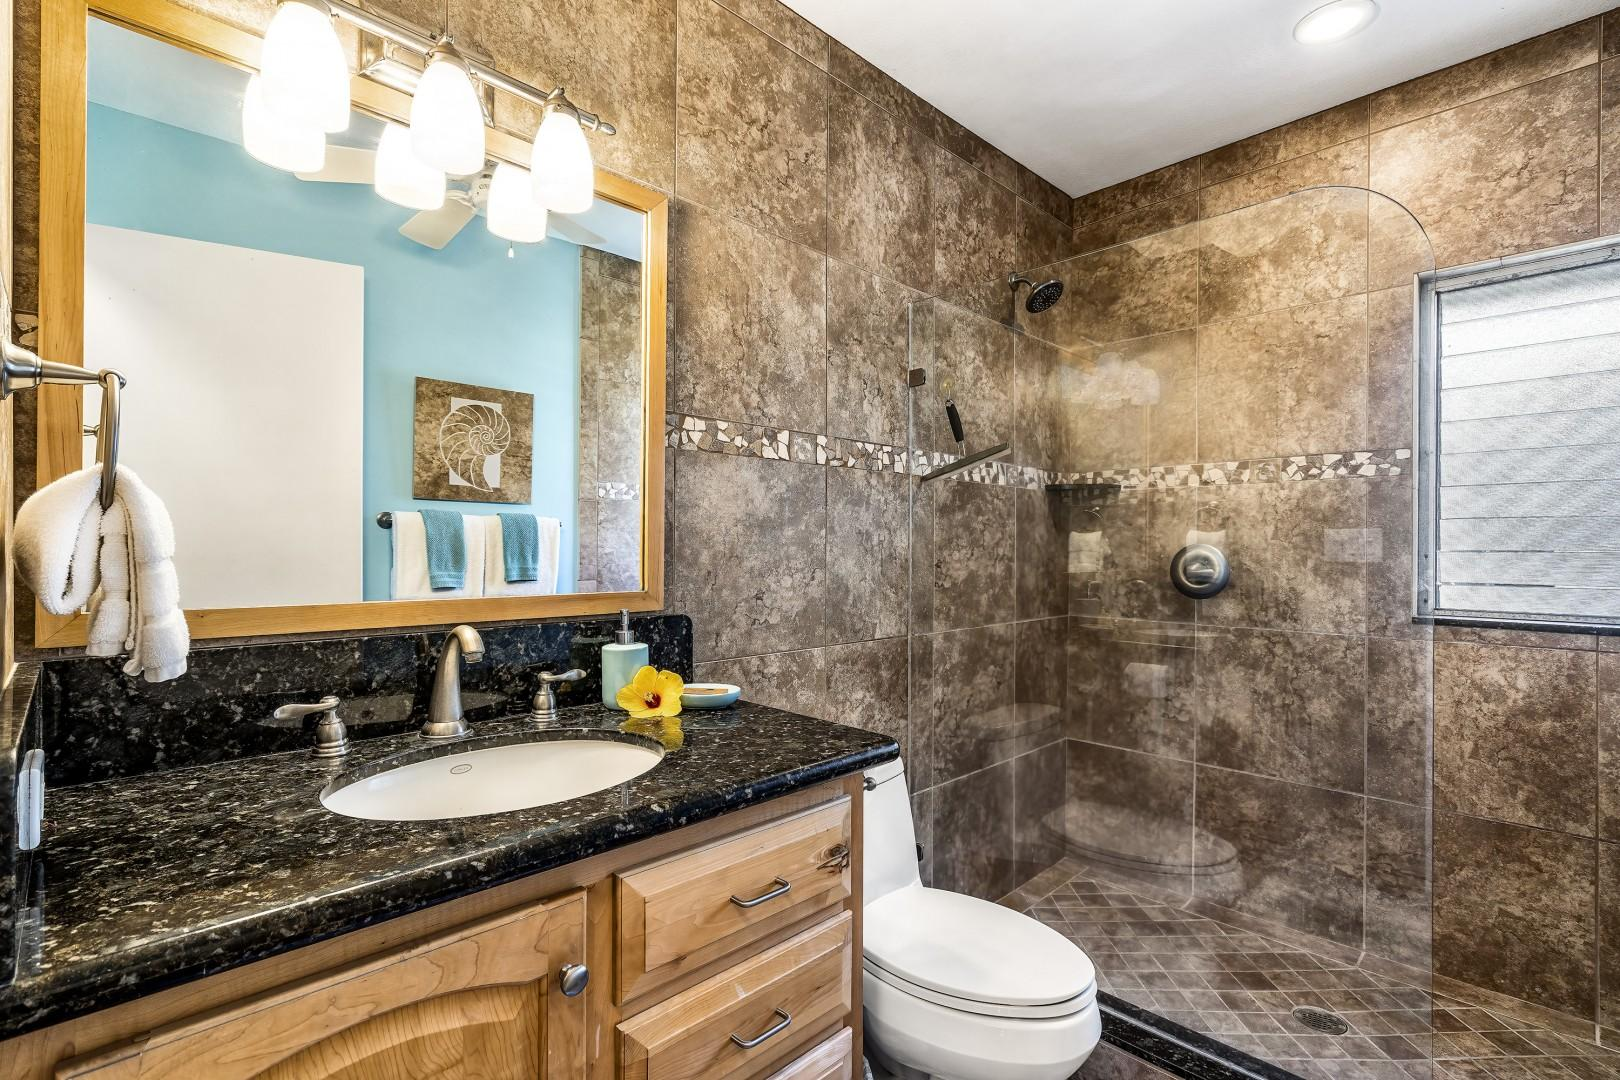 Fully renovated guest bathroom